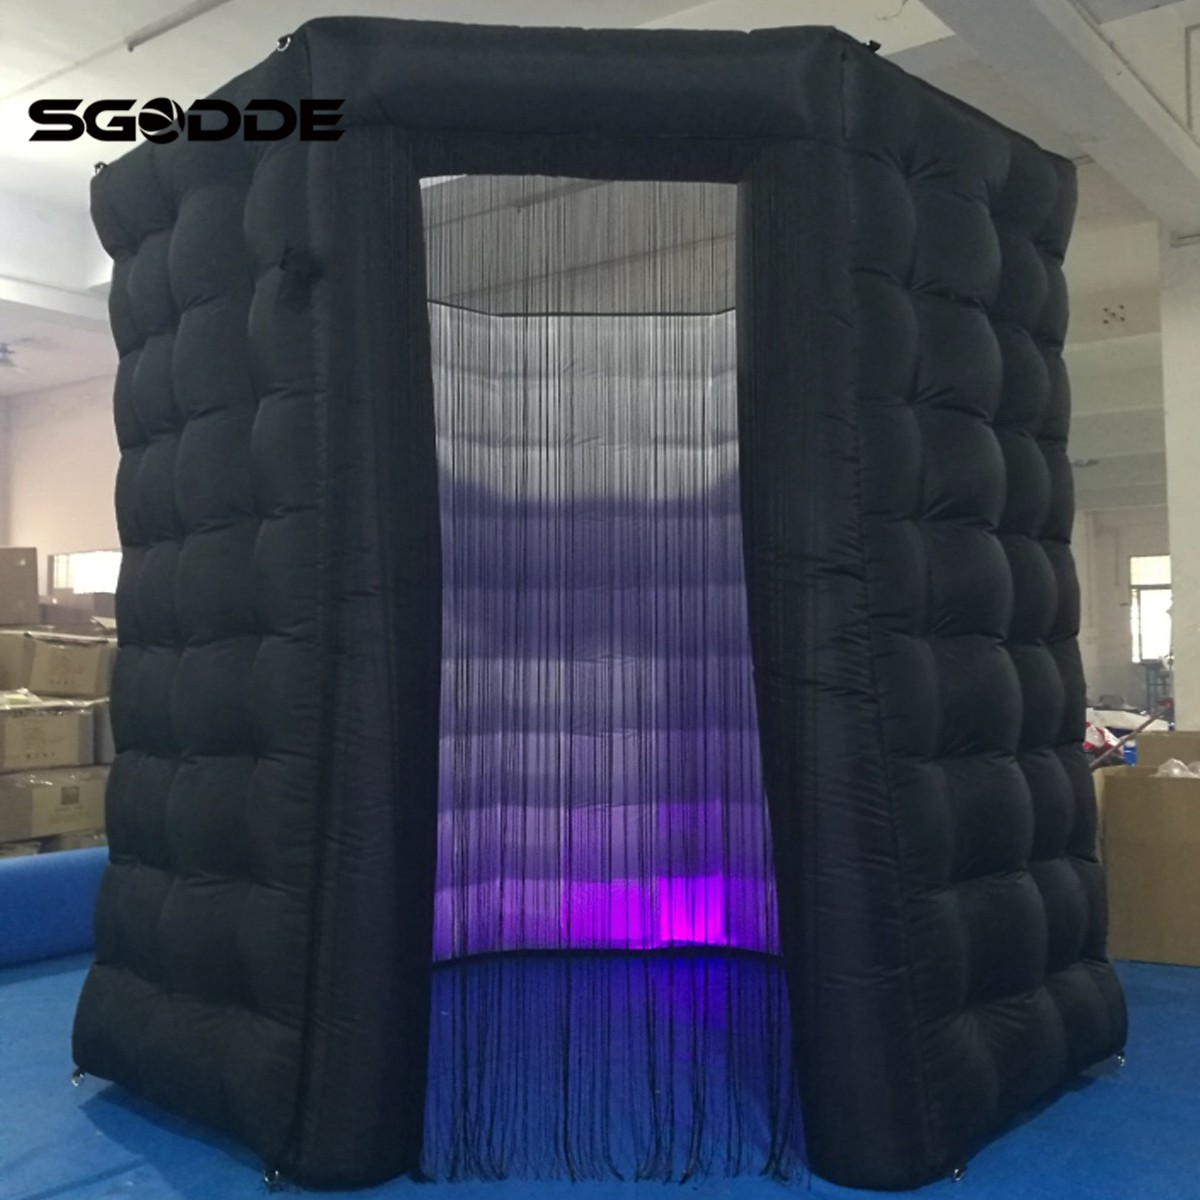 SGODDE 110V 8 LED Color Strip Inflatable Photo Booth Enclosure Octagon Tent Event Wedding Party free shipping oxford material wedding party decoration inflatable the photo booth